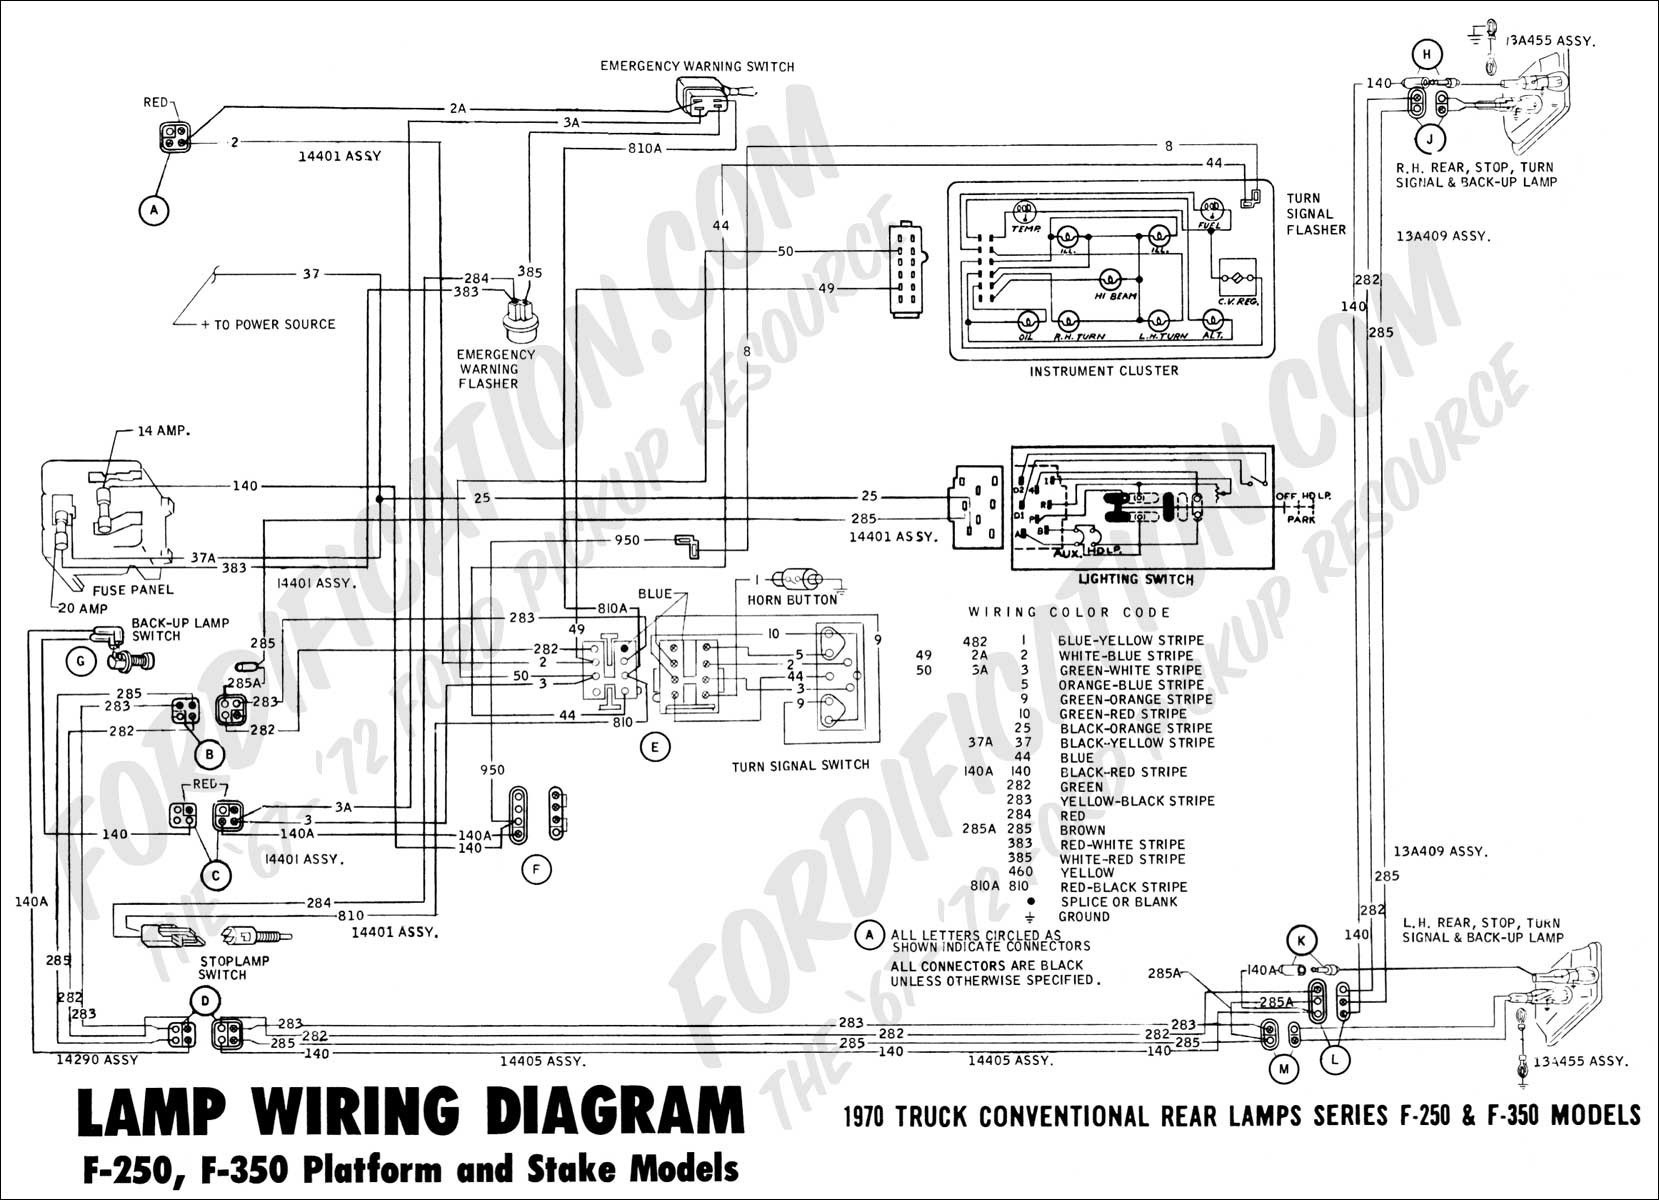 79 ford f 250 tail light wiring diagram free download wiring diagram rh botarena co Tail Light Wiring On 1979 Ford Truck 1997 Ford F-250 Tail Light Wiring